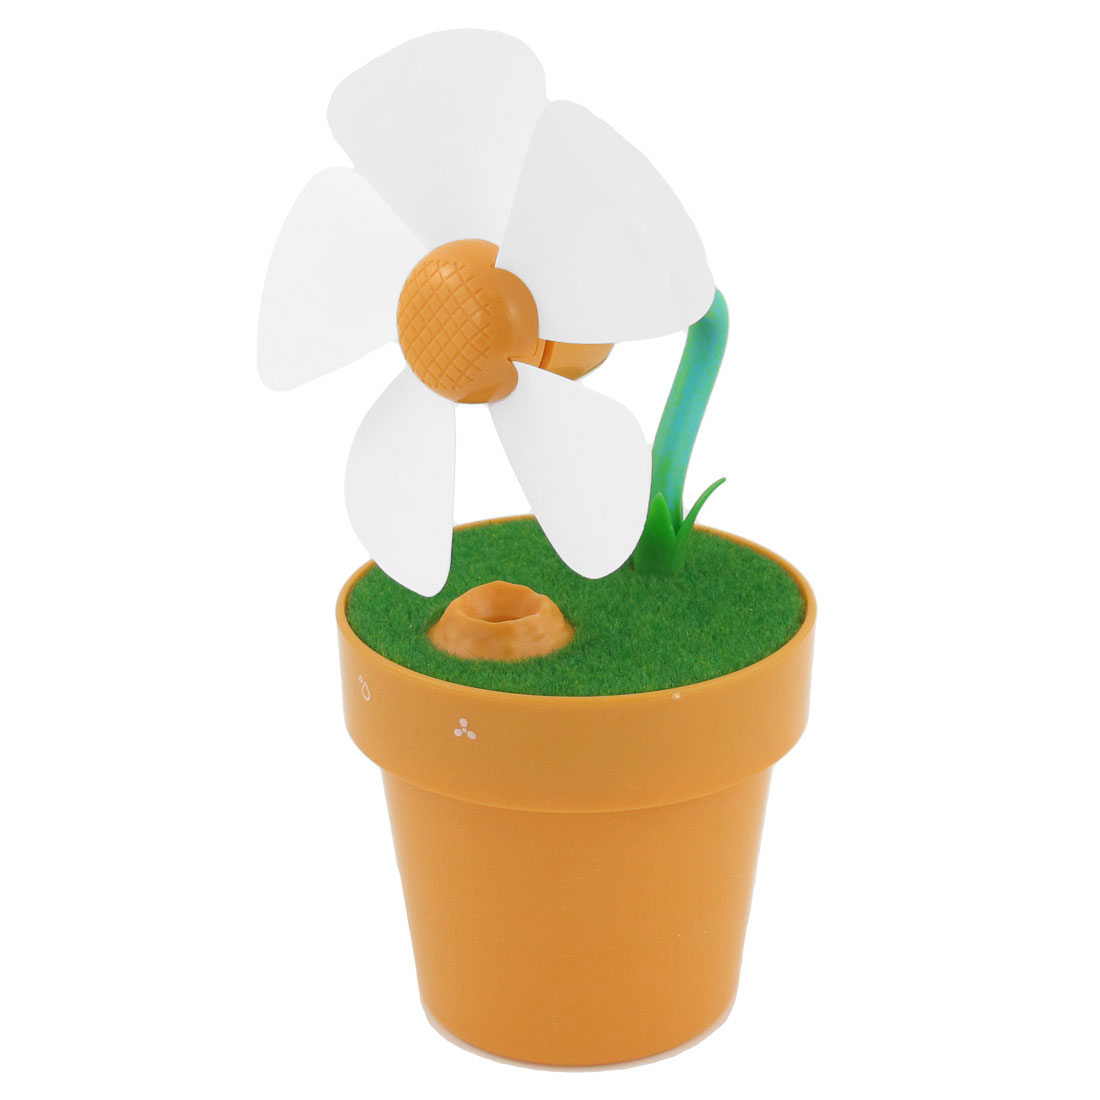 Office Desktop Adjustable Range USB Mini Flower Pot Humidifier Fan Orange